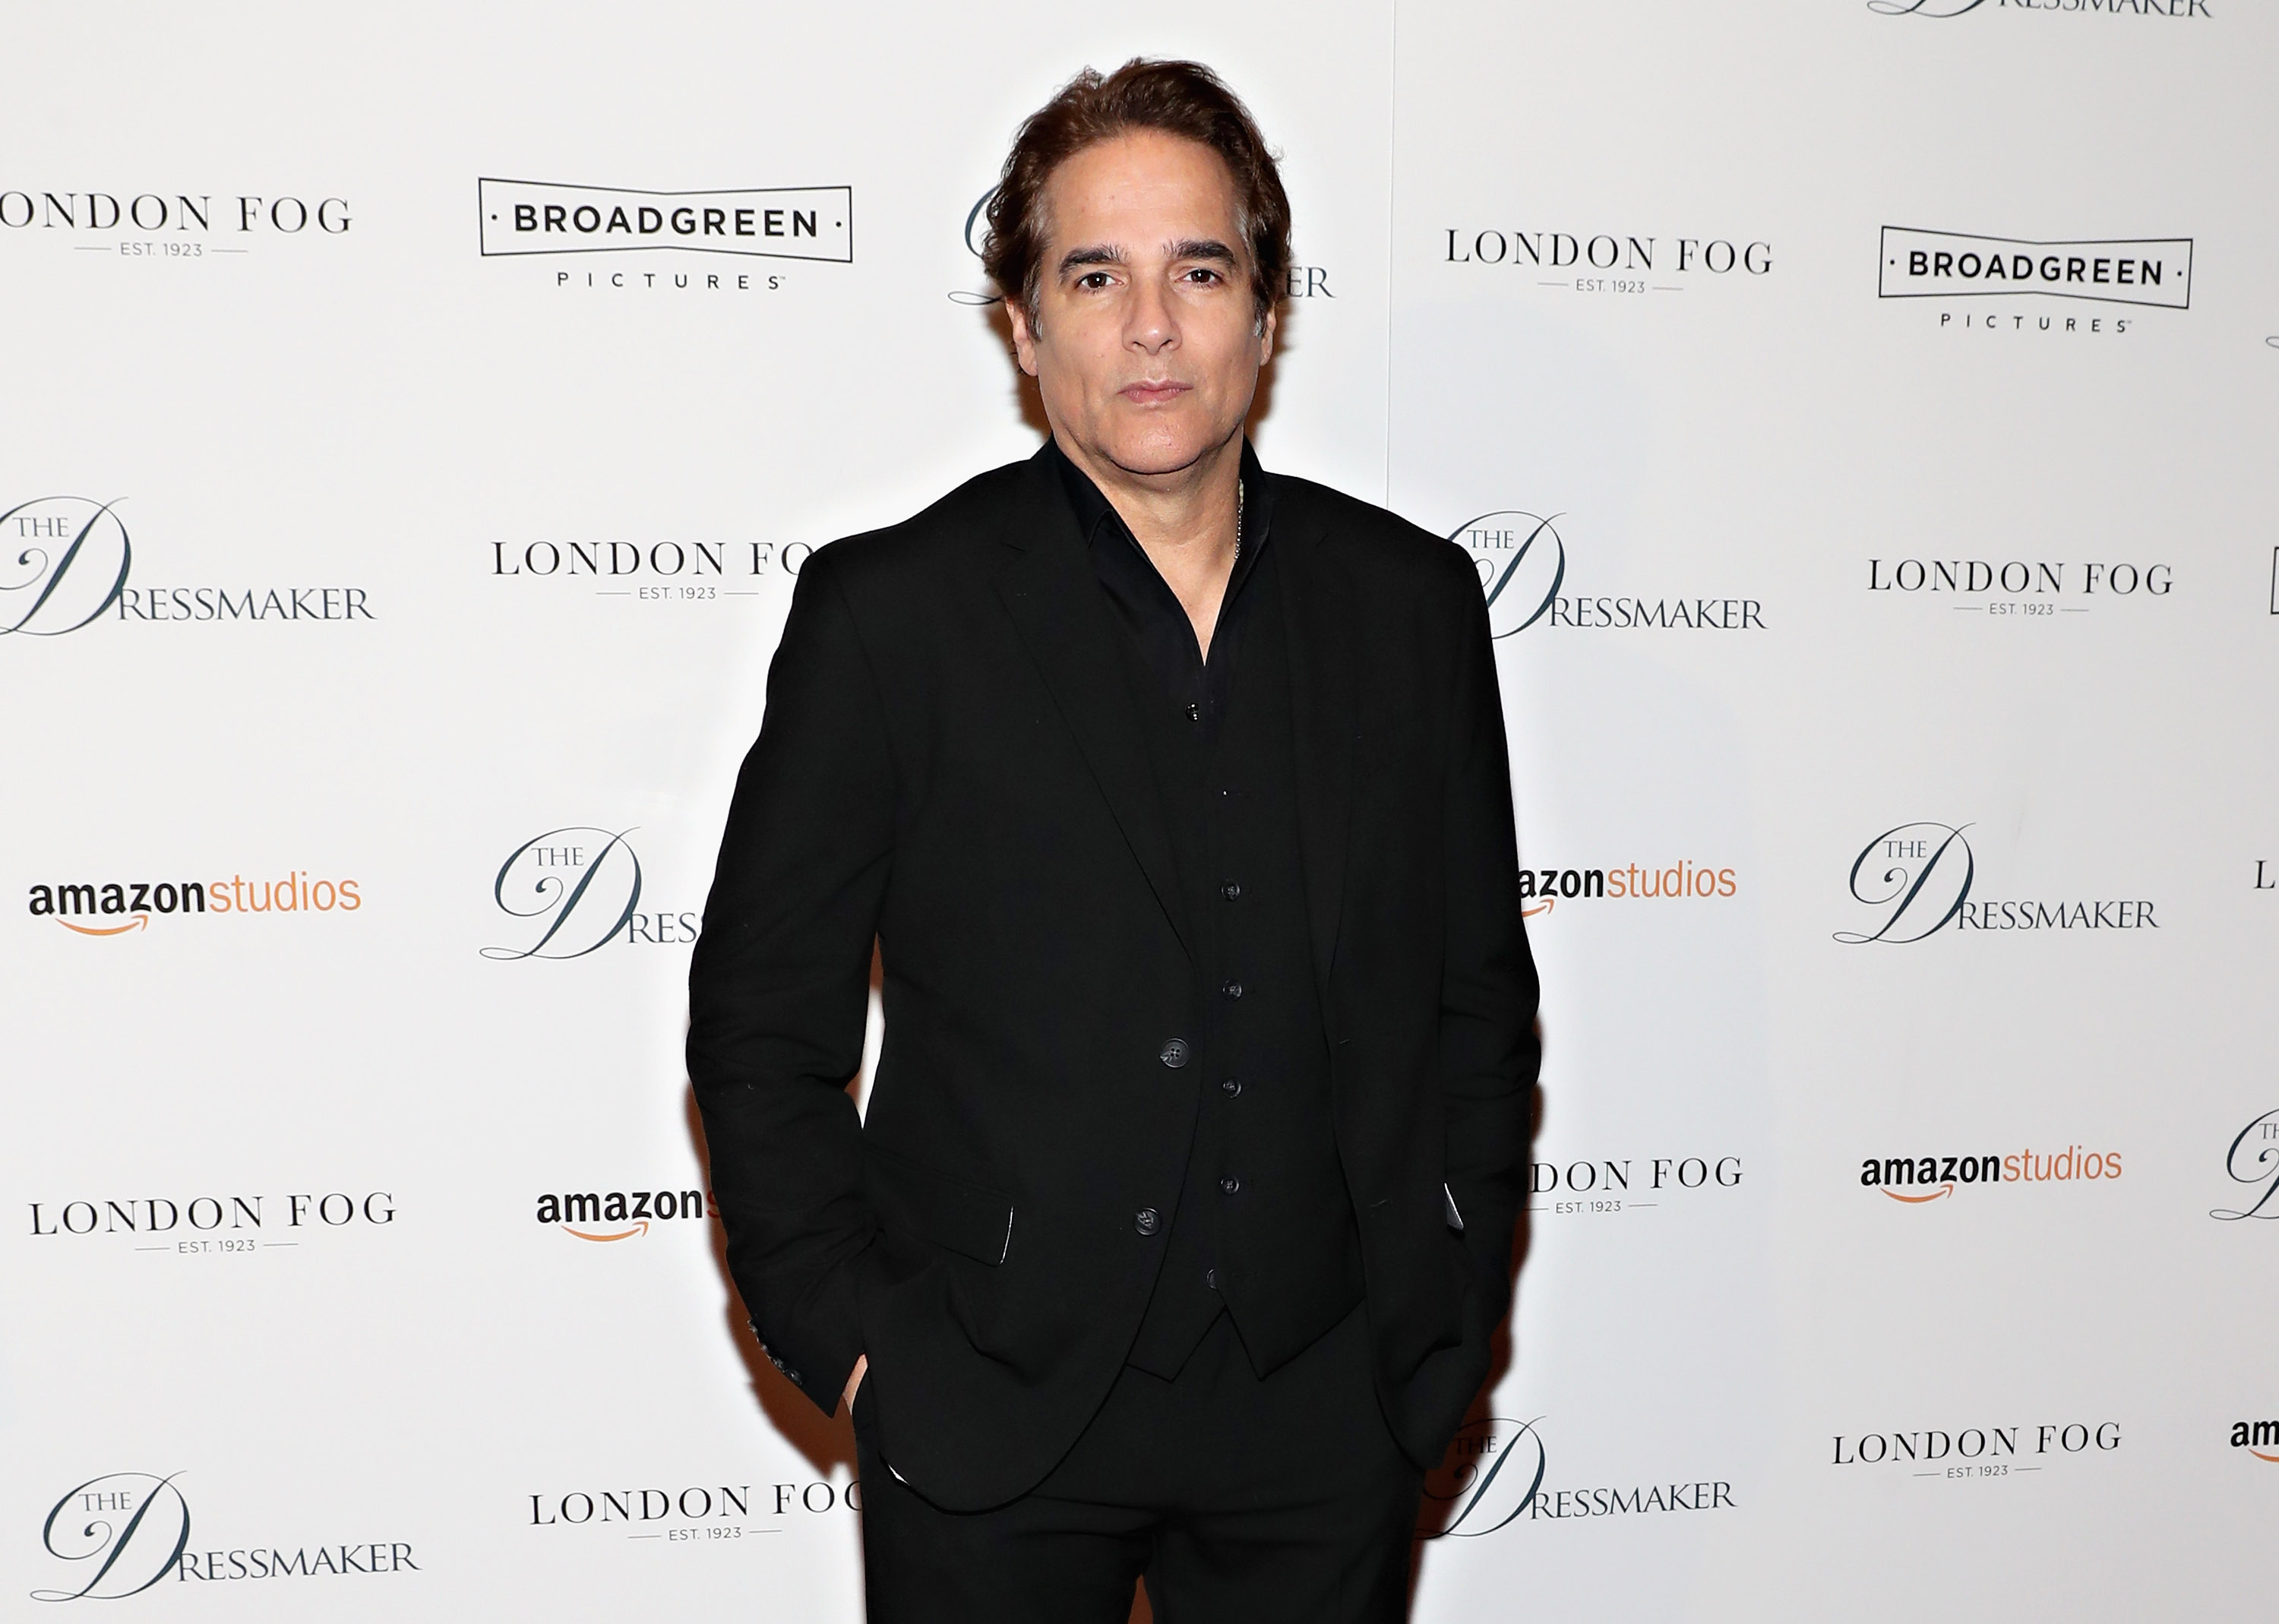 Actor Yul Vazquez attends as London Fog presents a New York special screening of 'The Dressmaker' in New York City (Getty Images)